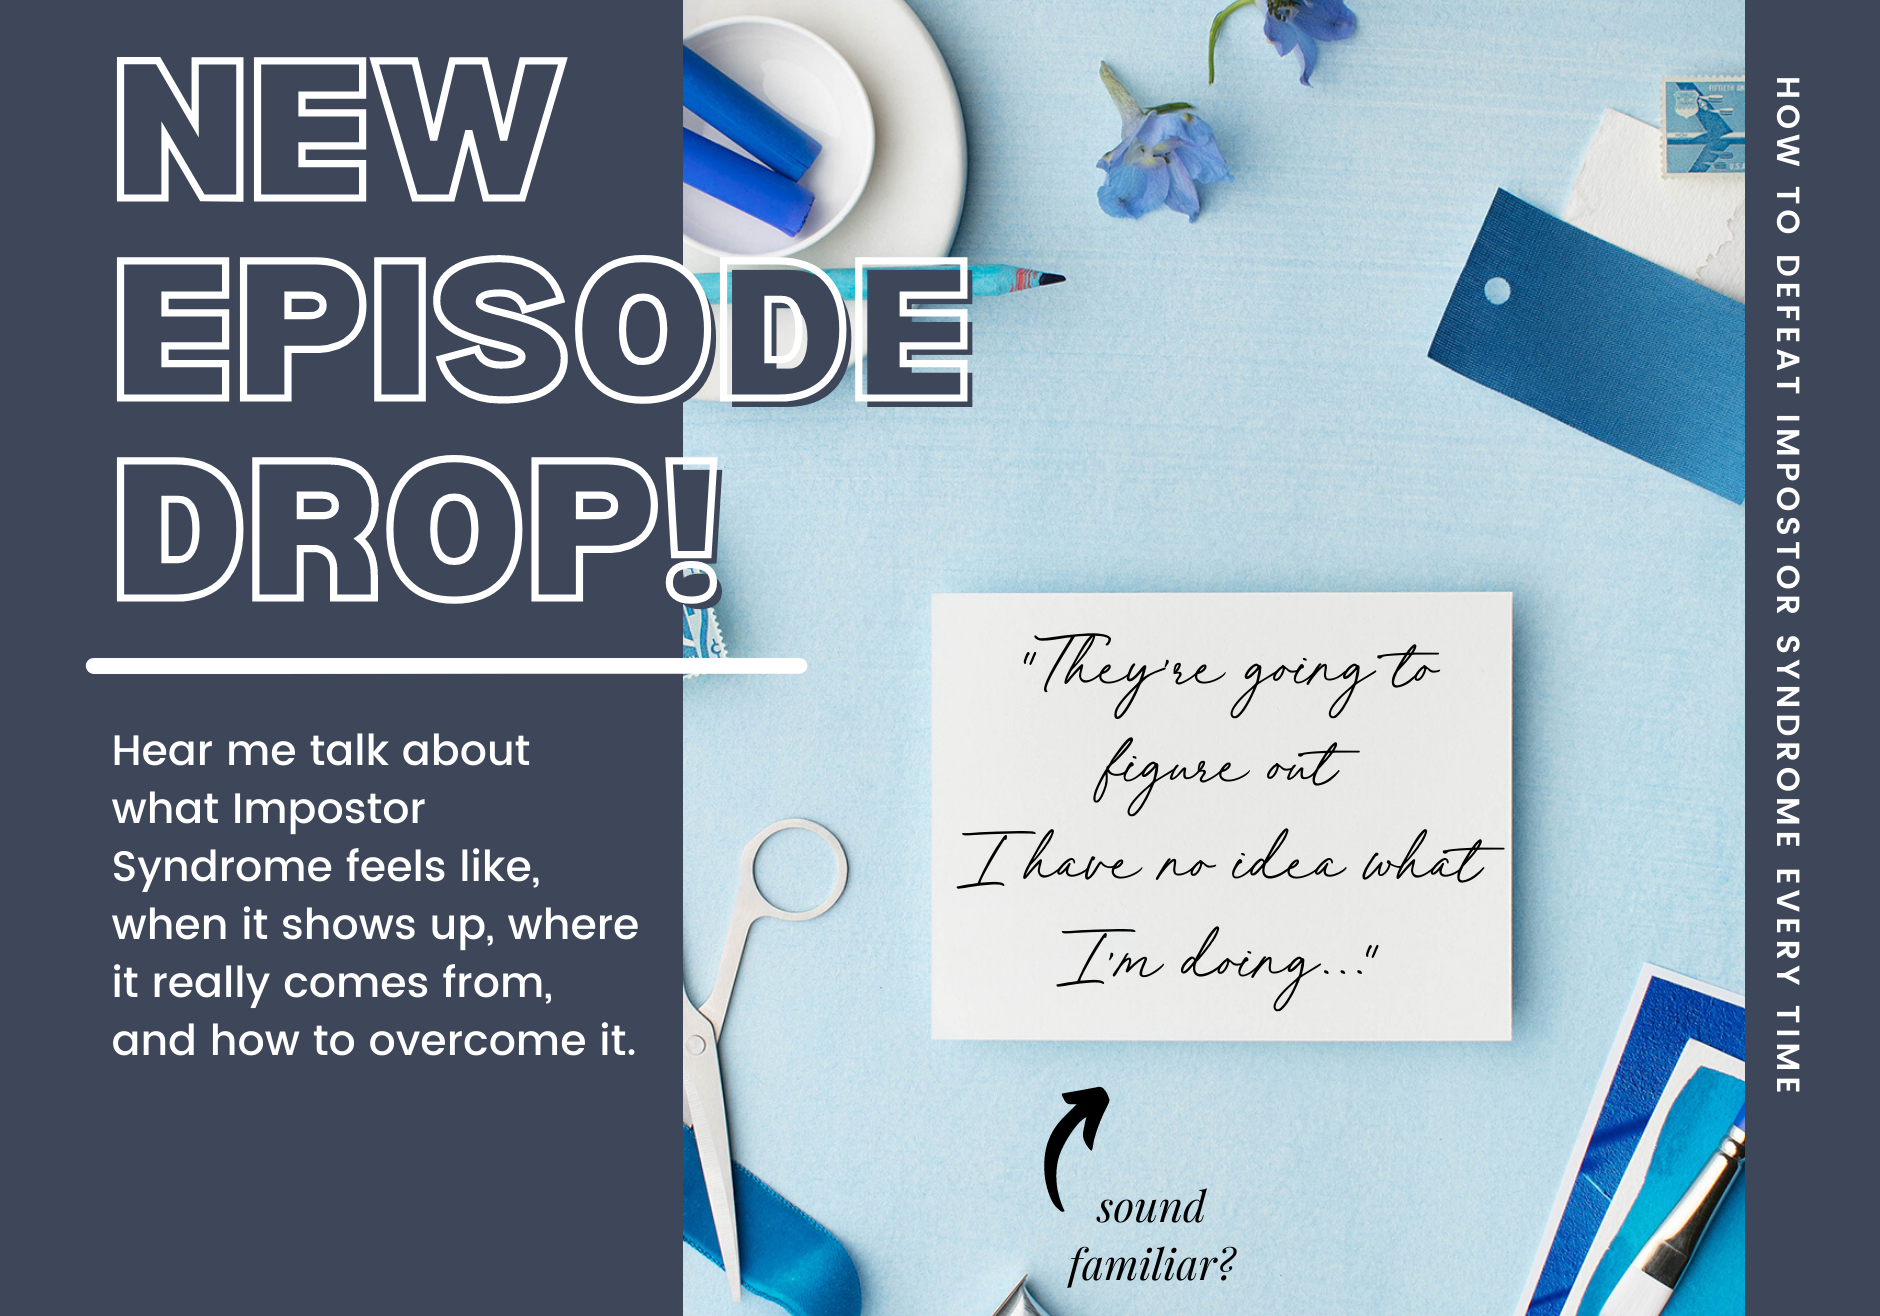 RLL Podcast - New Episode Drop Announcement (2)